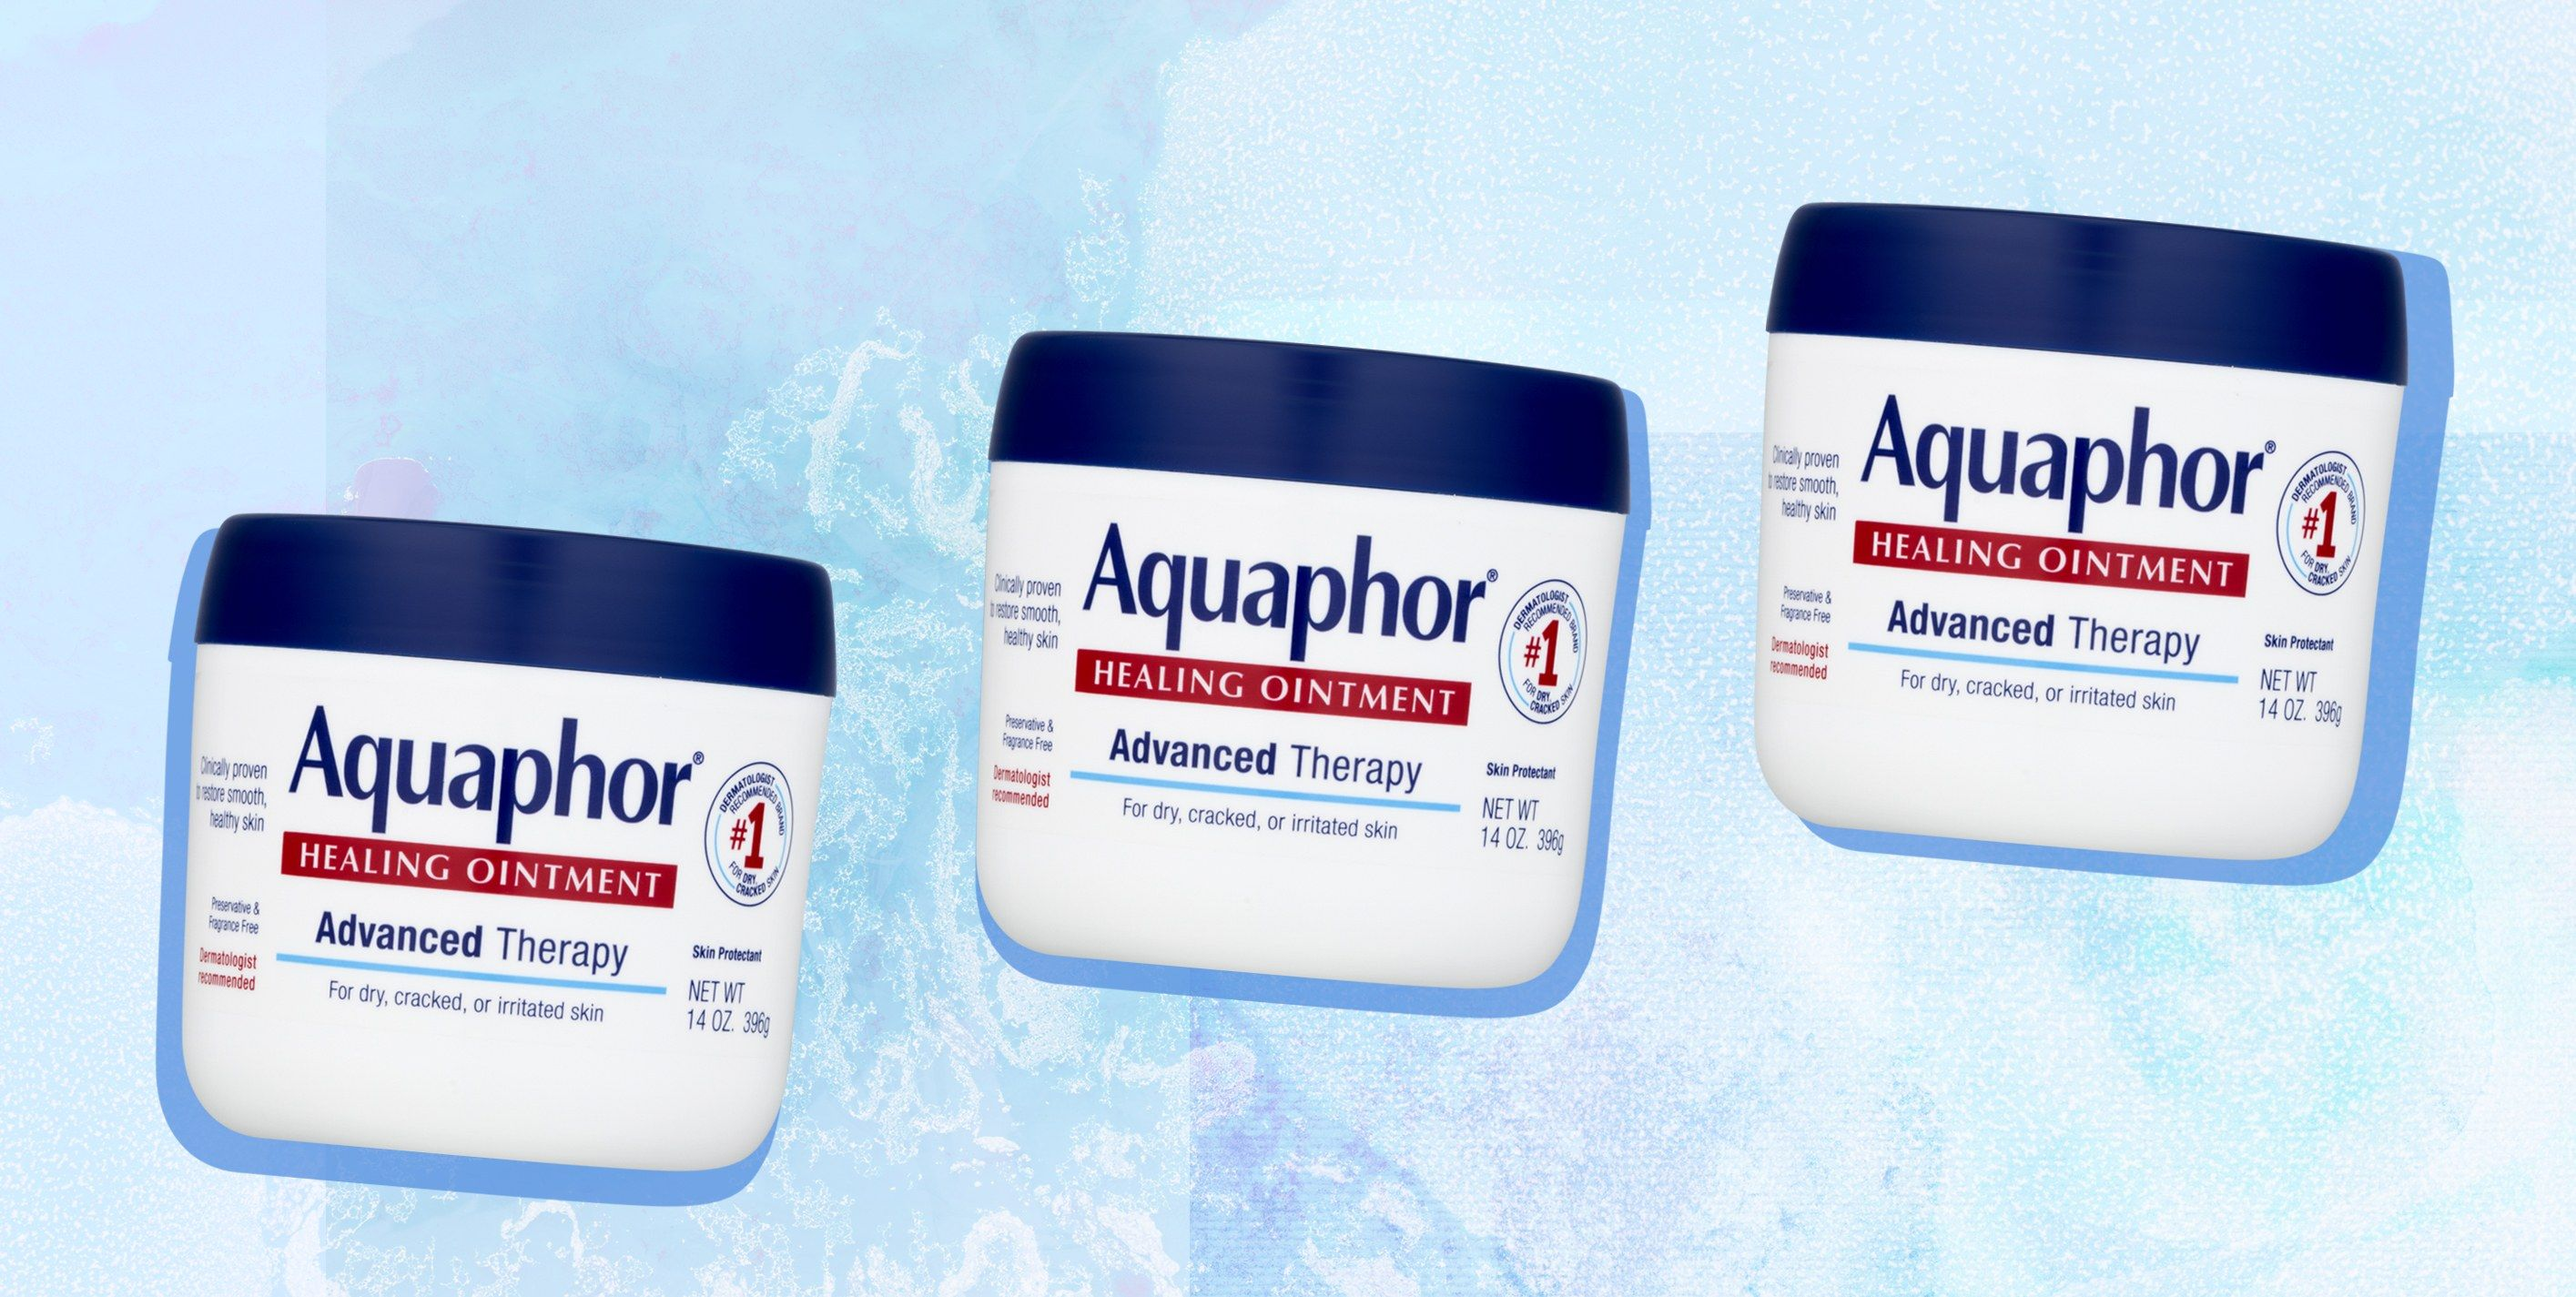 Heress why aquaphor is my favorite beauty product ever